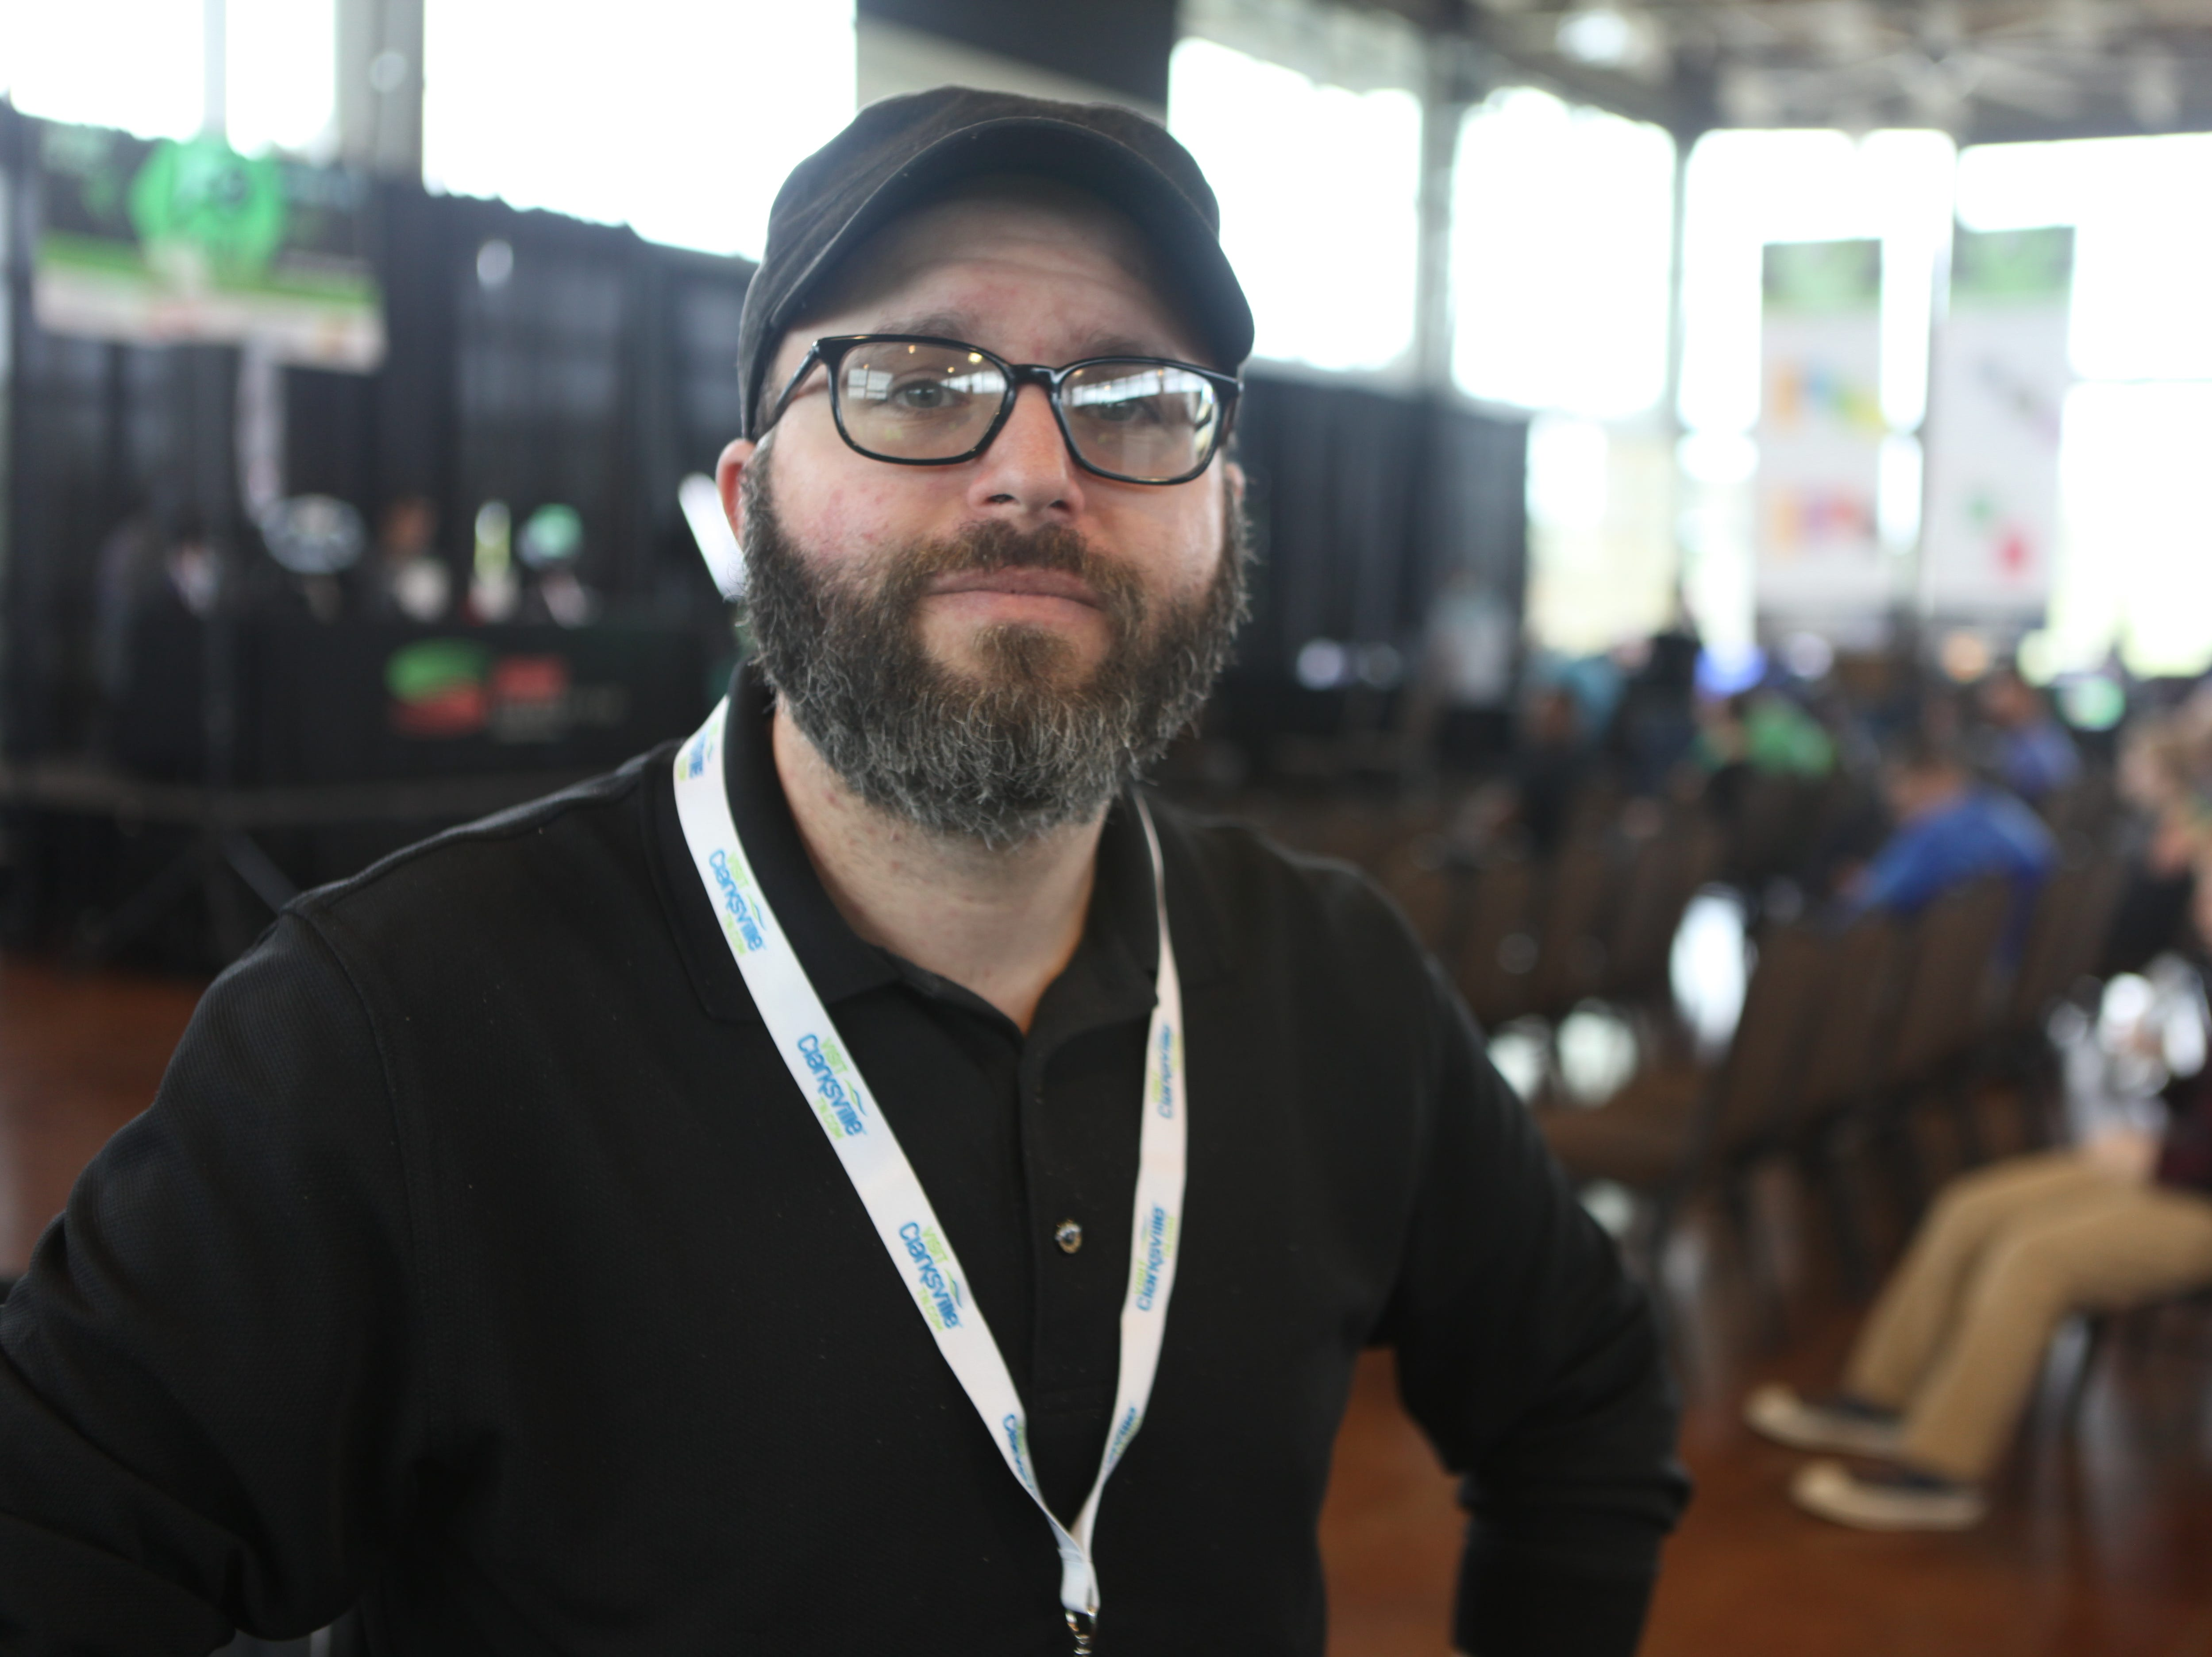 Matt Fischer, broadcasting instructor at West Creek High School, at the second annual F2 Con Gaming Tournament on Saturday, April 20, 2019.